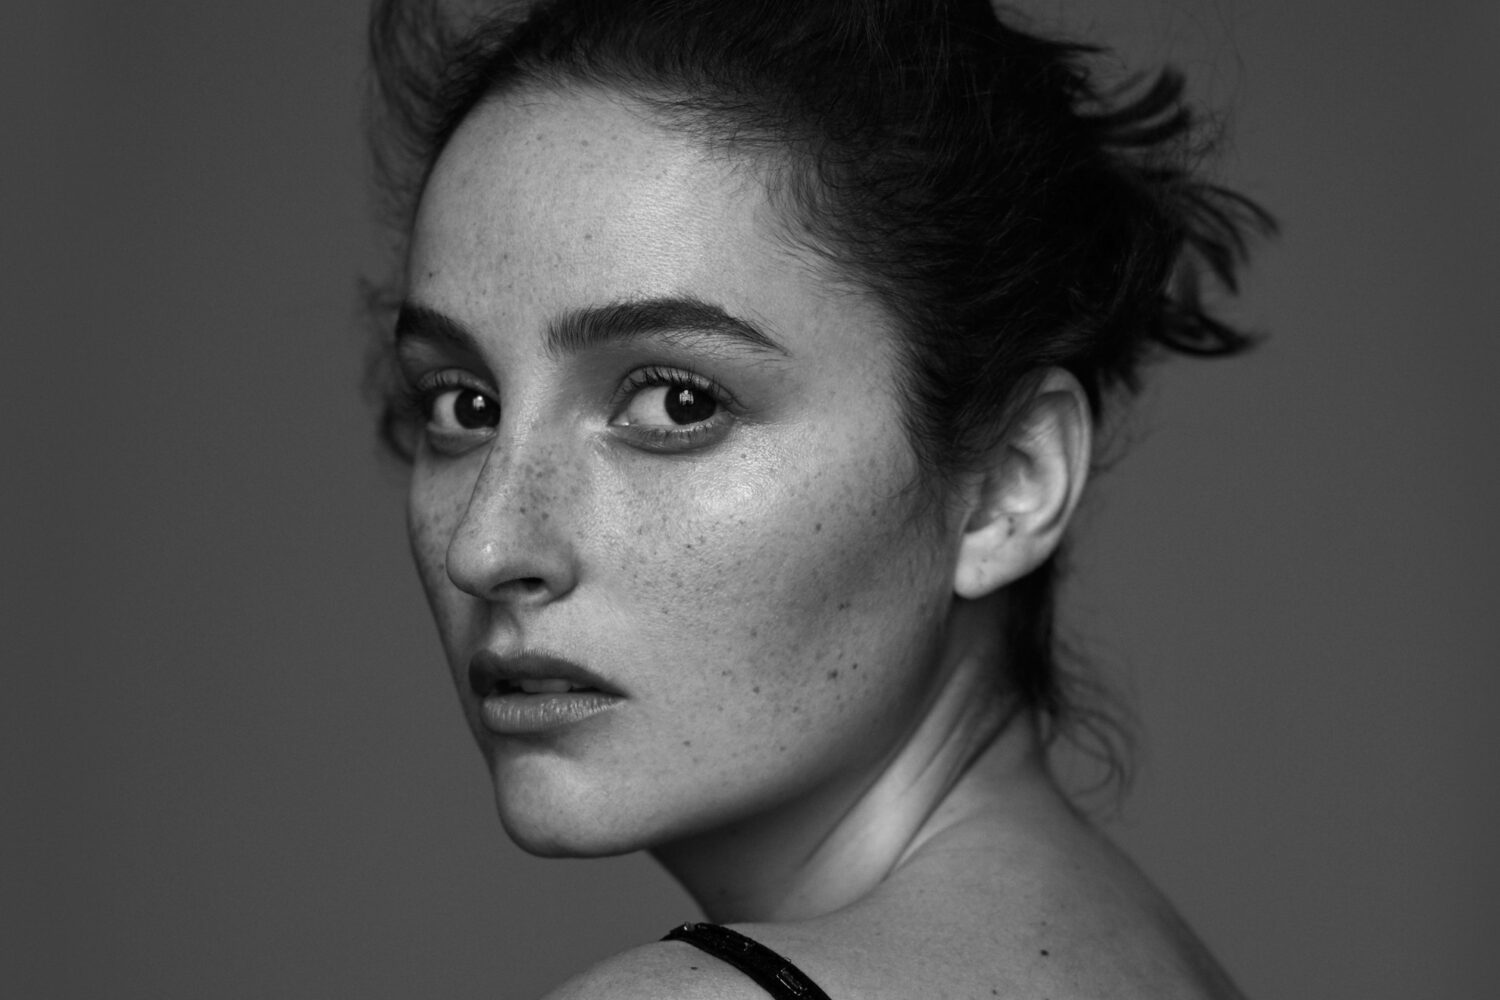 Banks announces a handful of massive UK shows